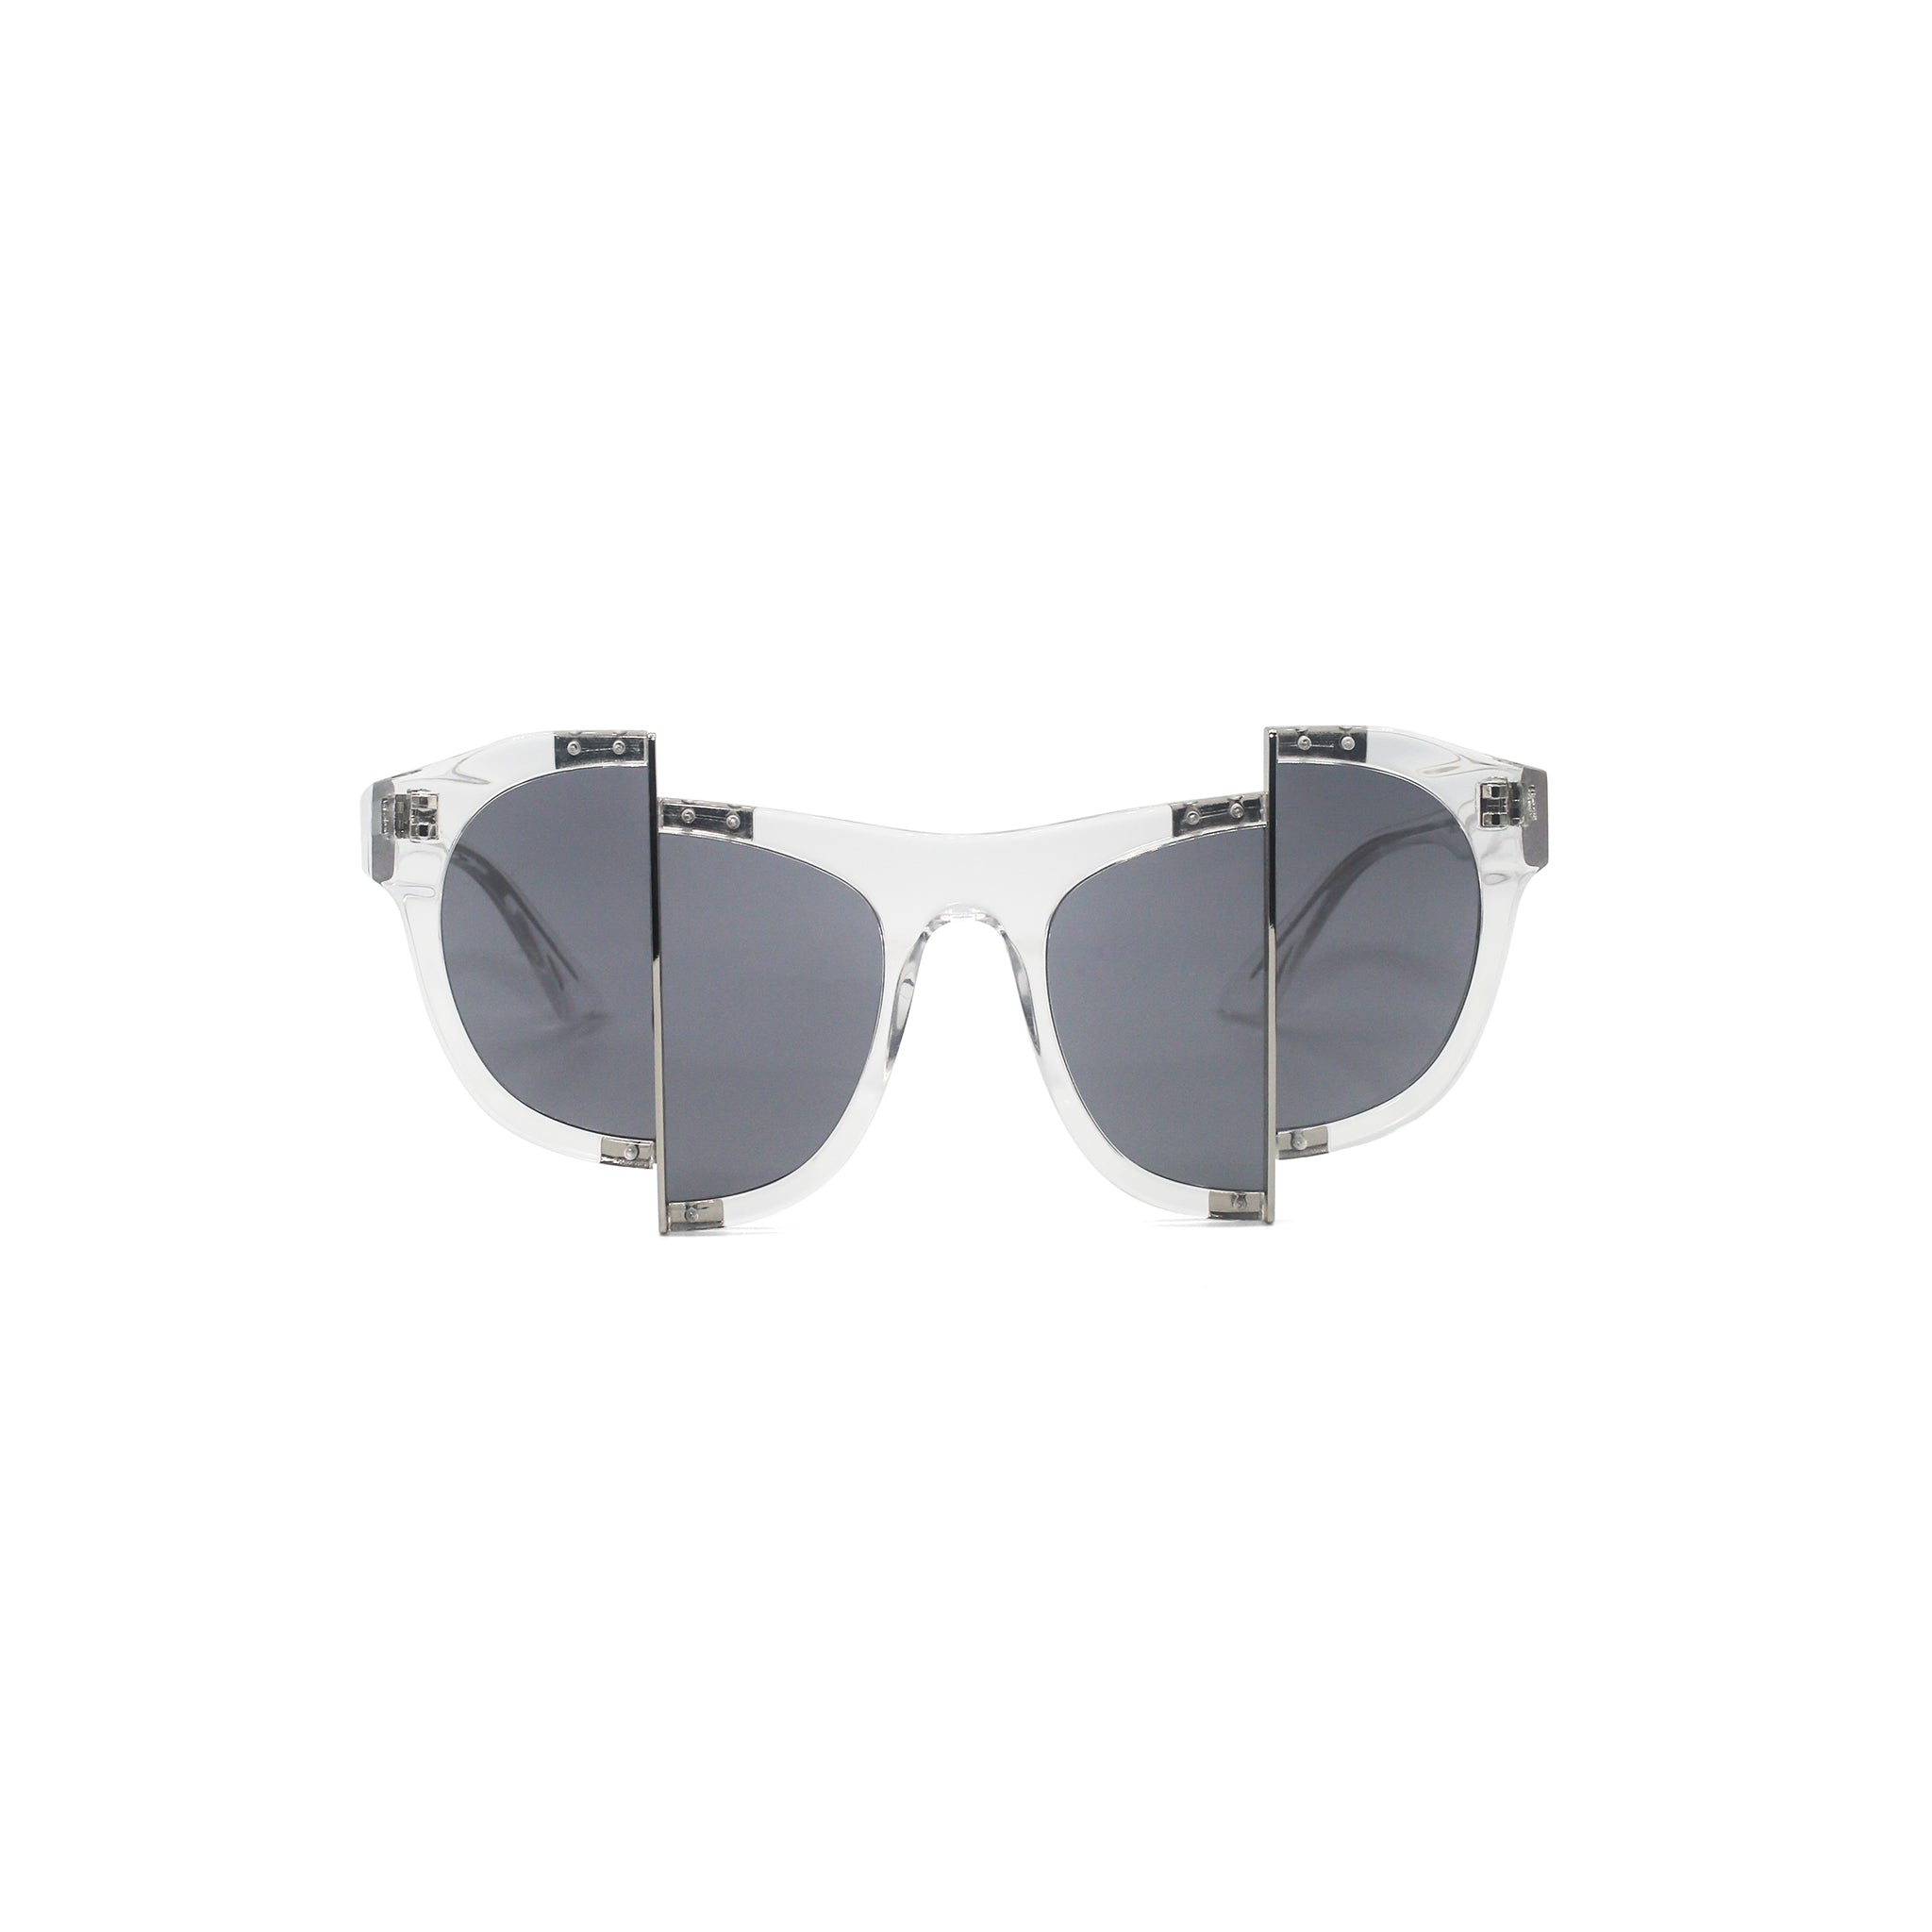 Percy Lau Clear Sunglasses on Well(un)known Available at wellunknown.com